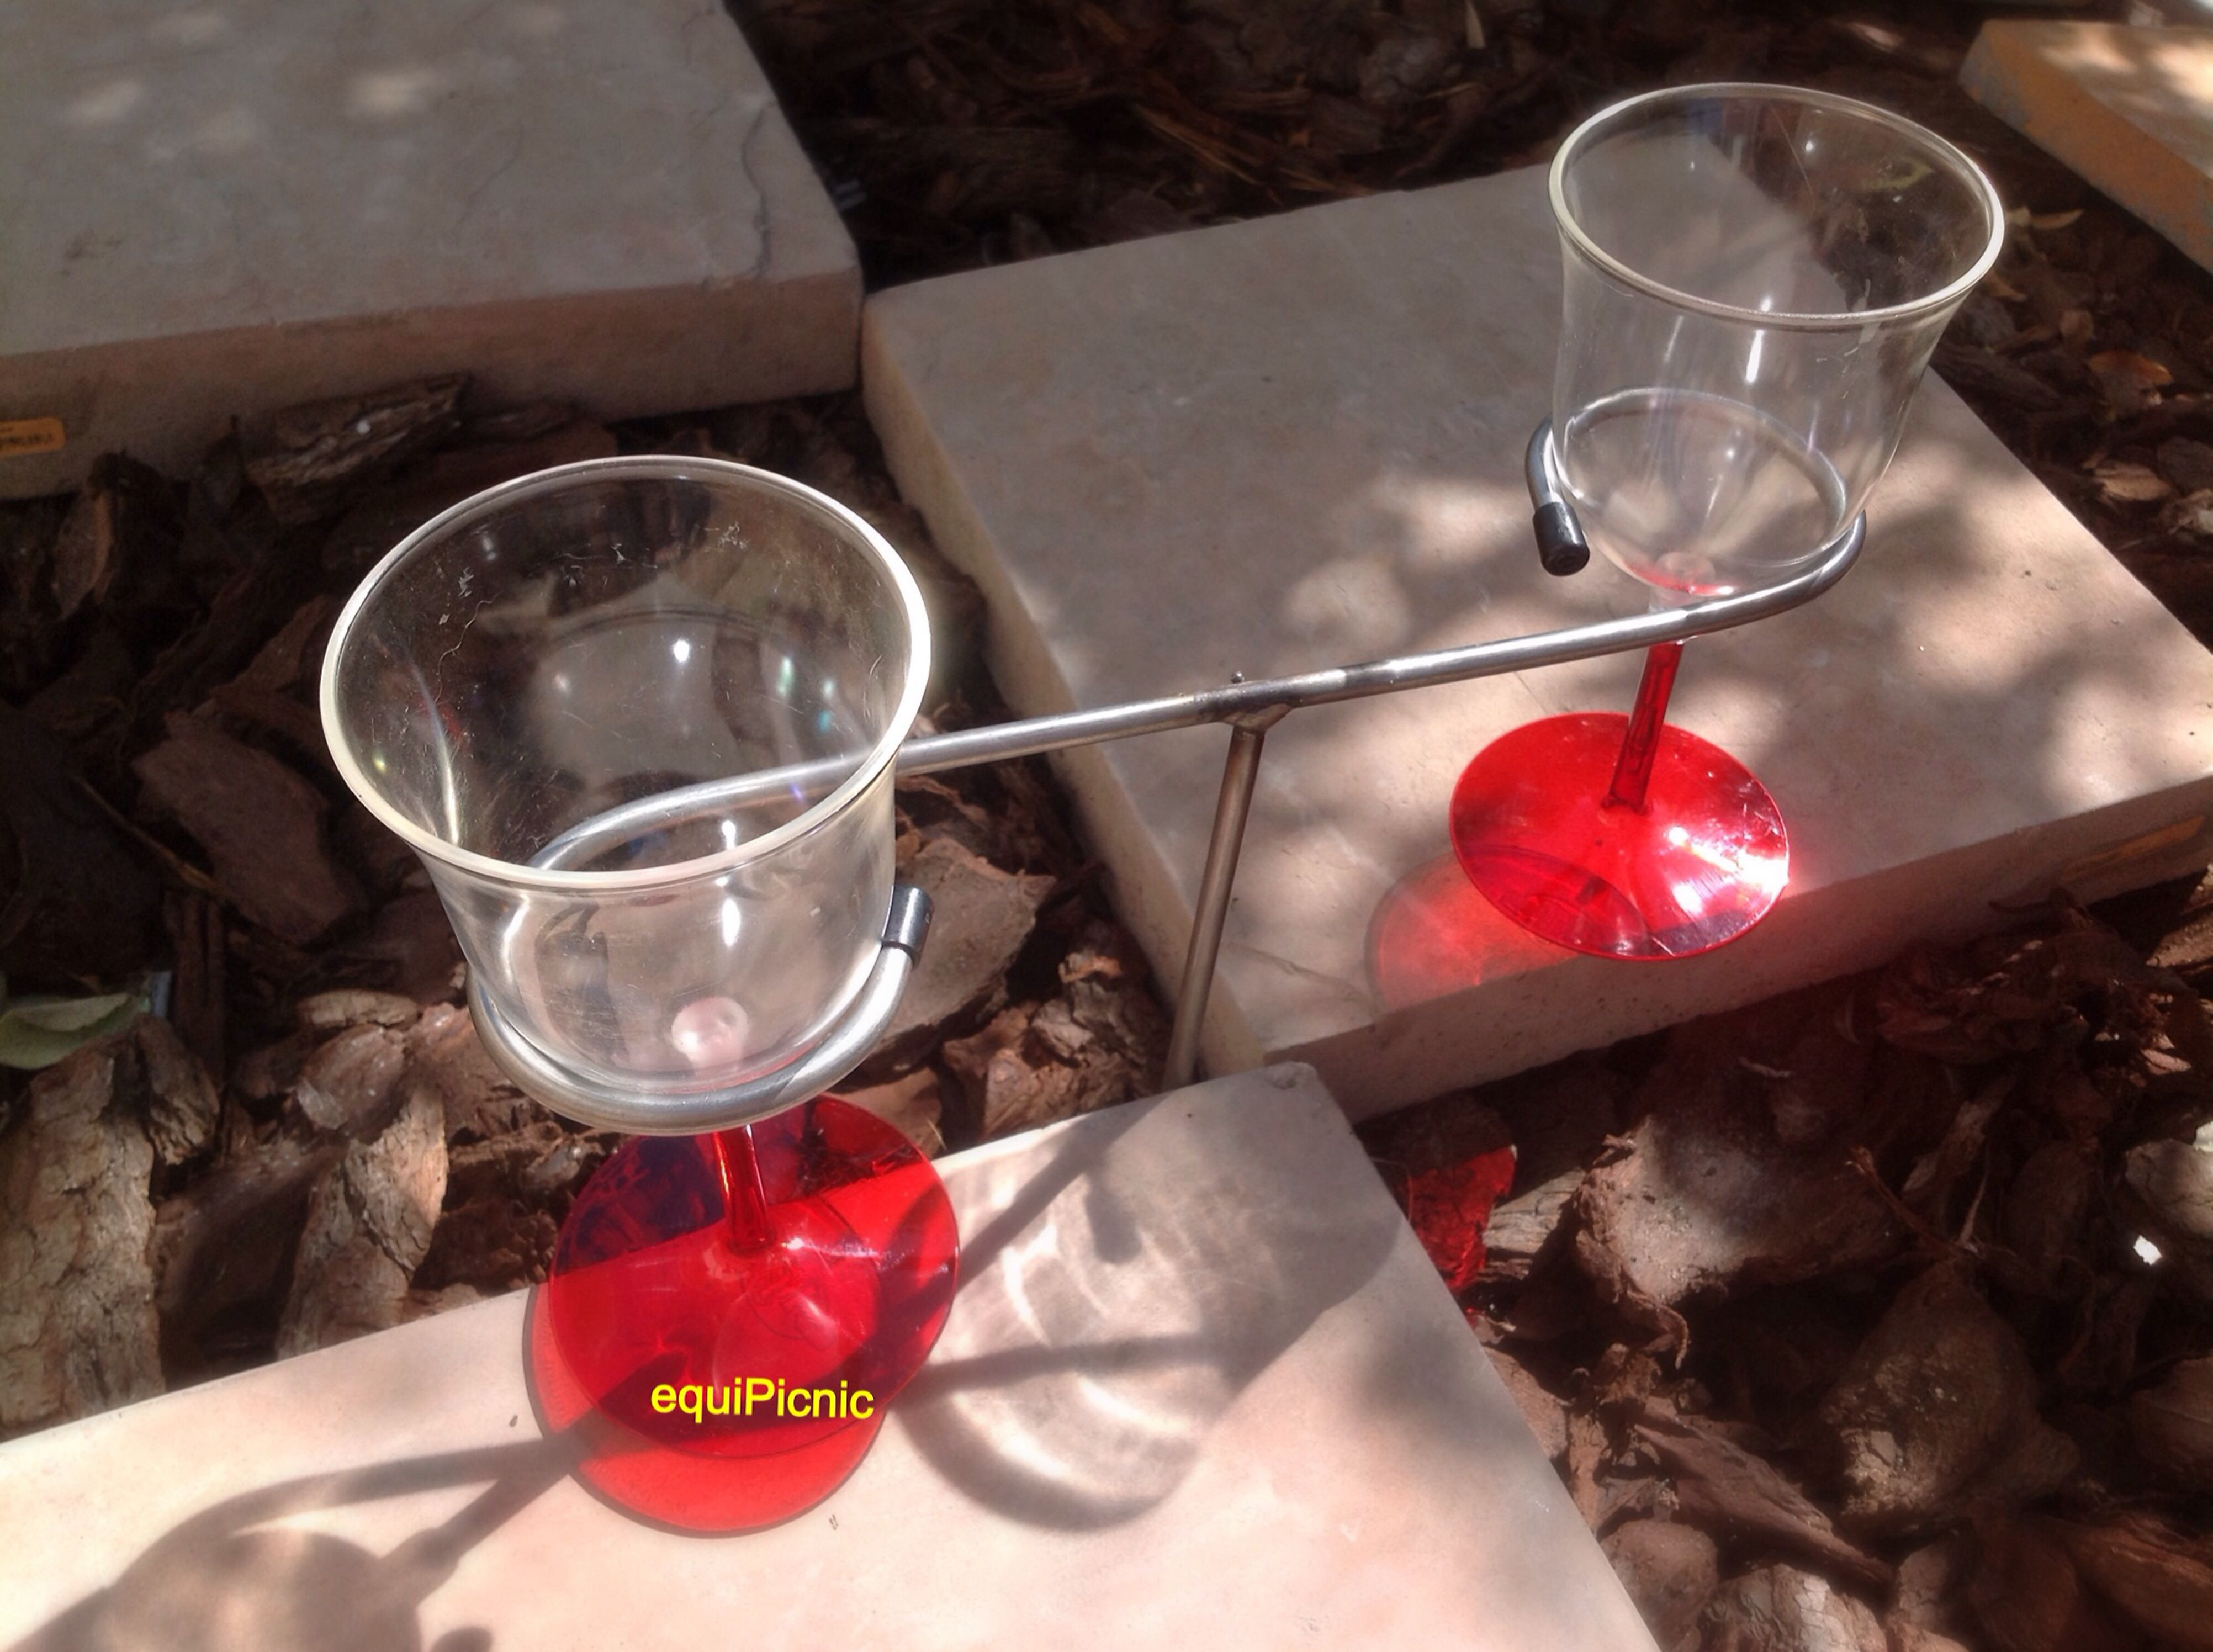 Double The Fun Glass Holder Picnic Means Quality Time Together Ditch The Mobile So Balancing The Wine Glasses Shouldn T D Glass Holders Glass Picnic Basket